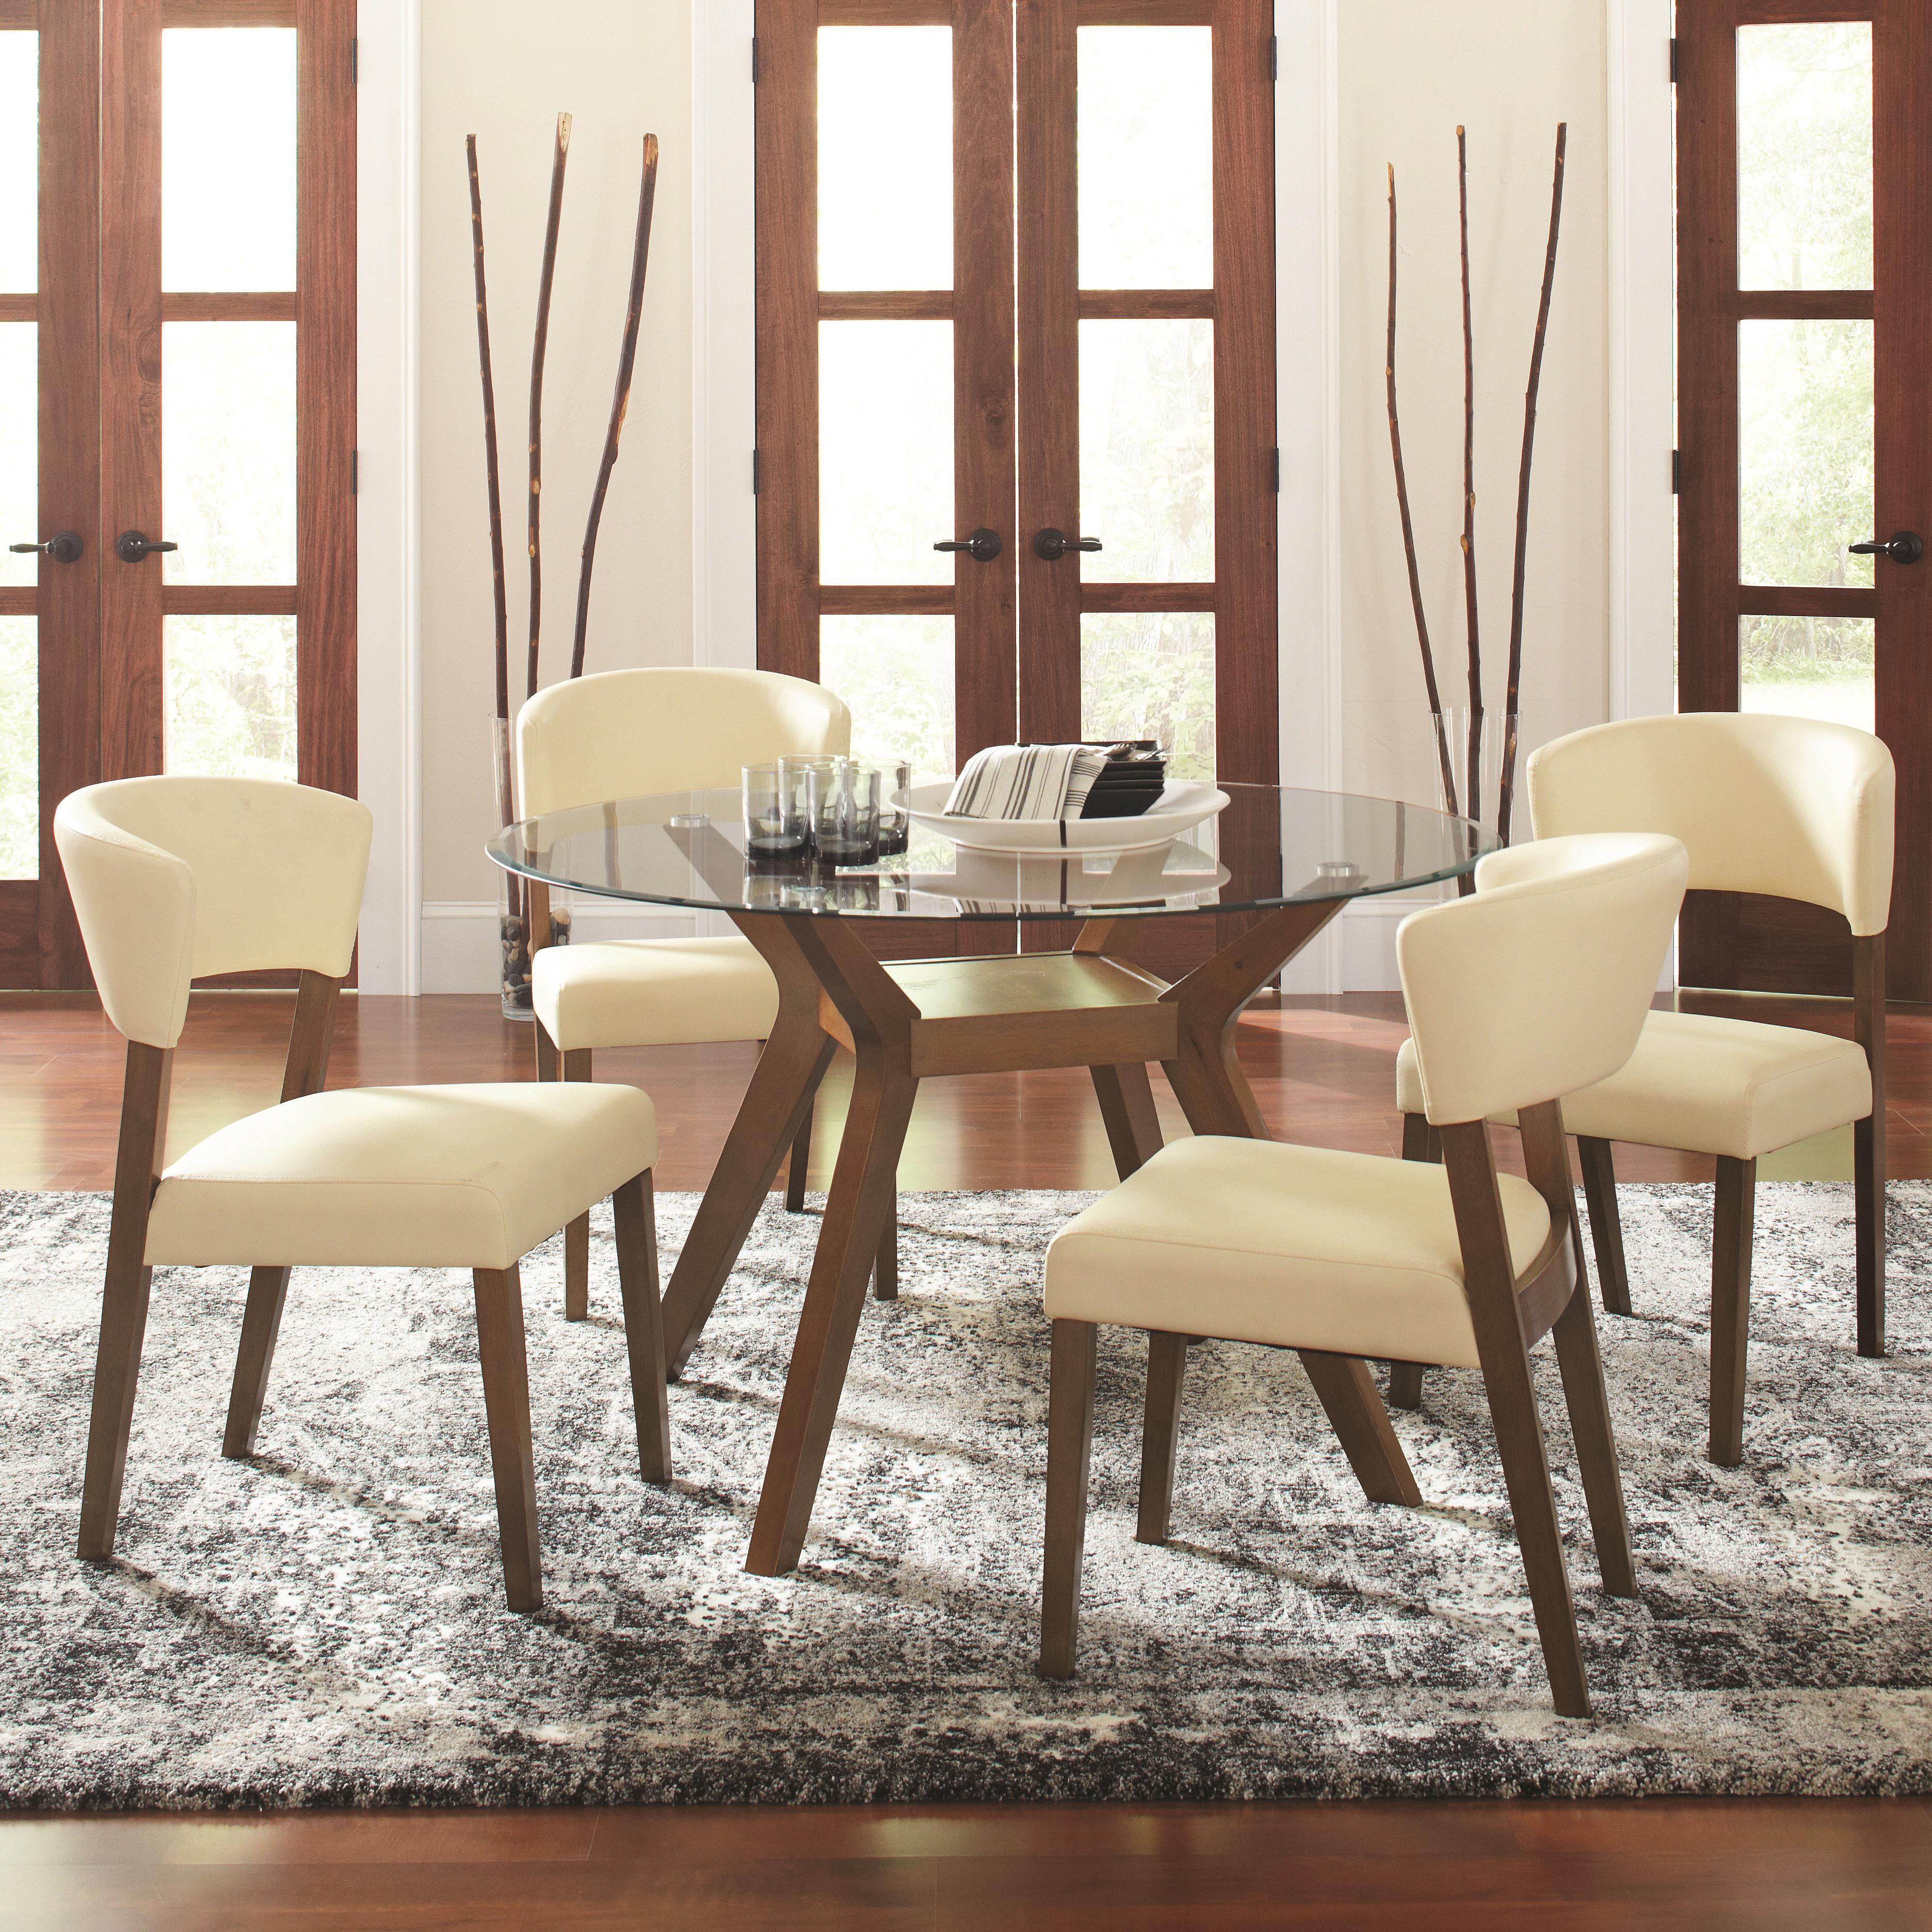 round table and chairs set chair design images coaster paxton 12218 5 piece dining with side